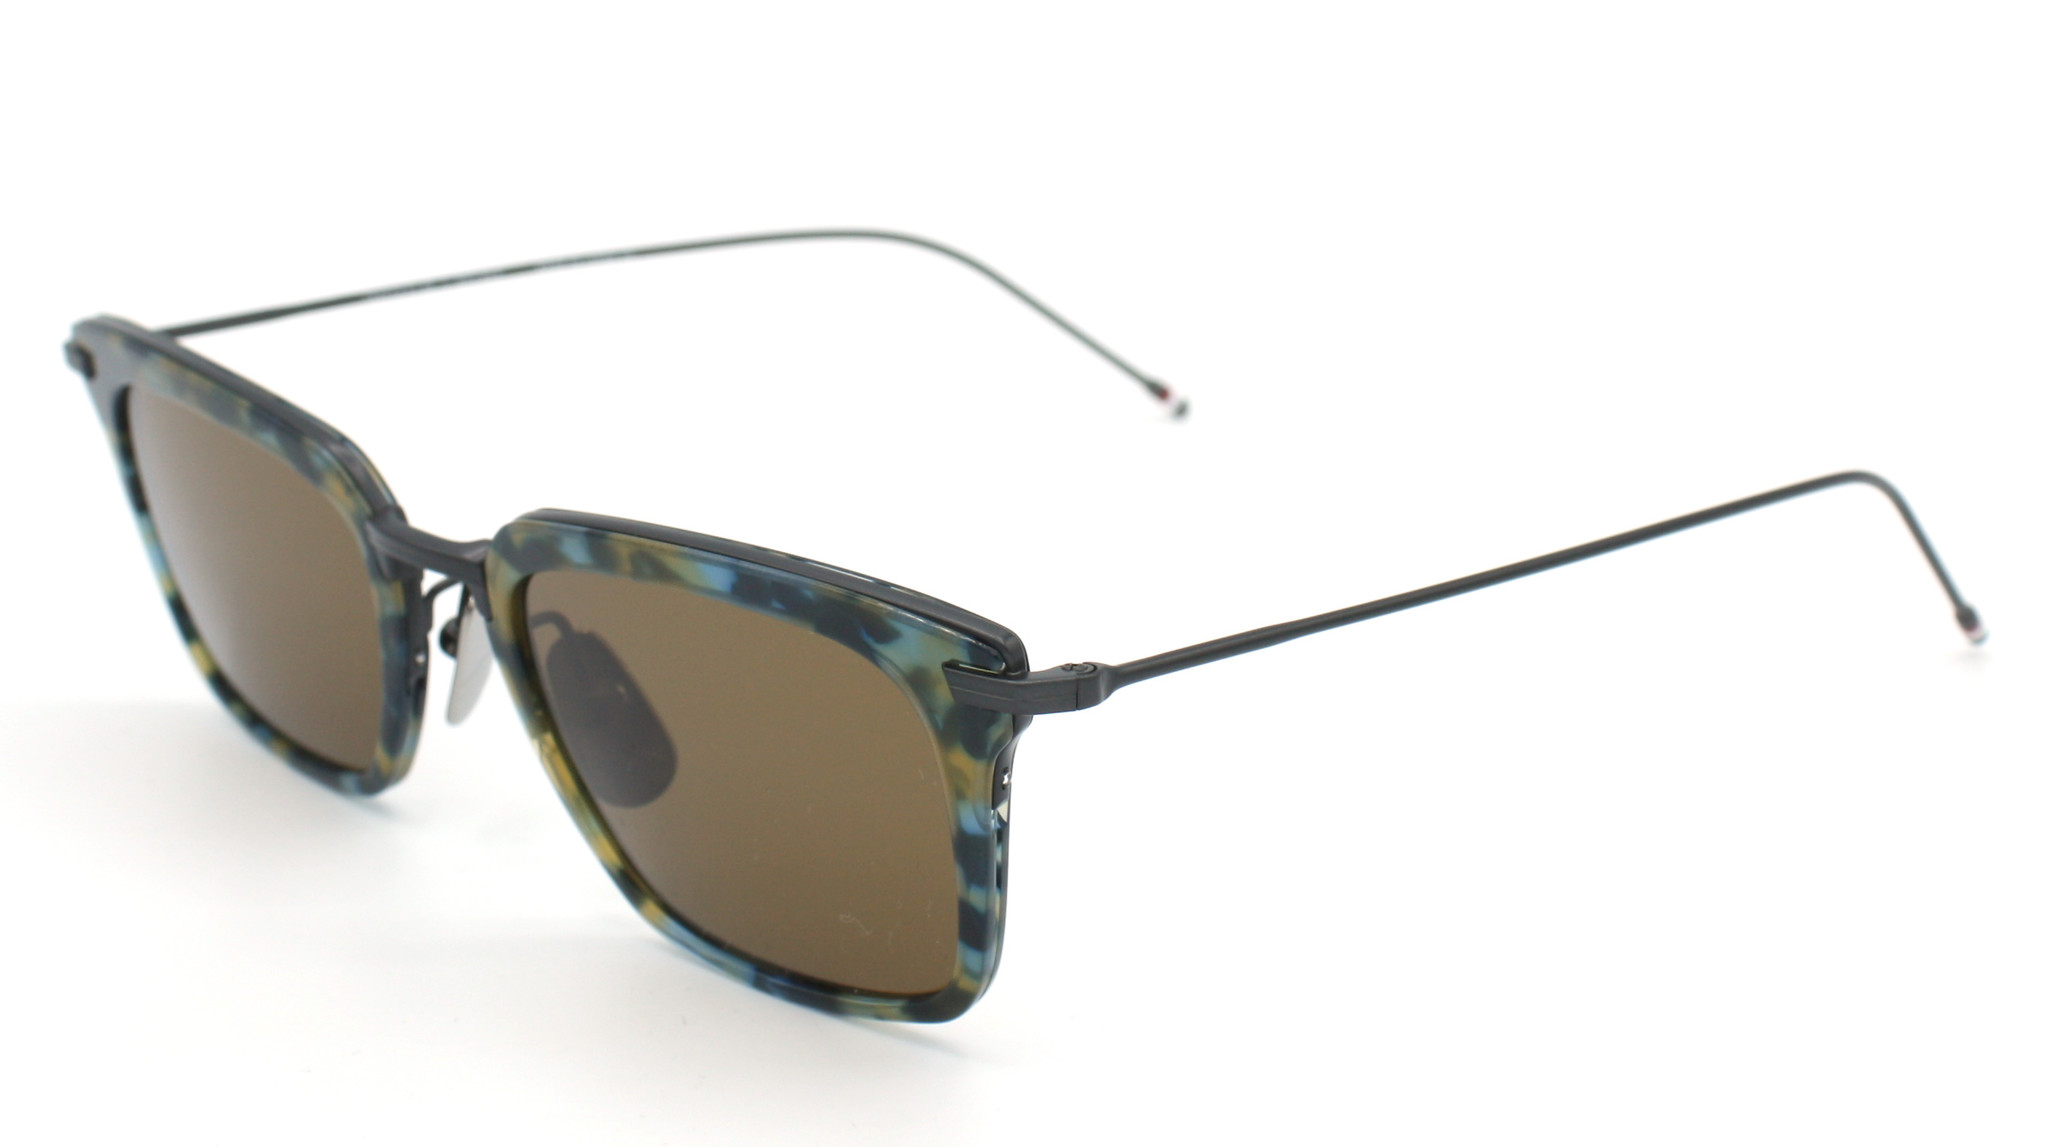 Thom Browne - TBS916 - NVY-BLK-2